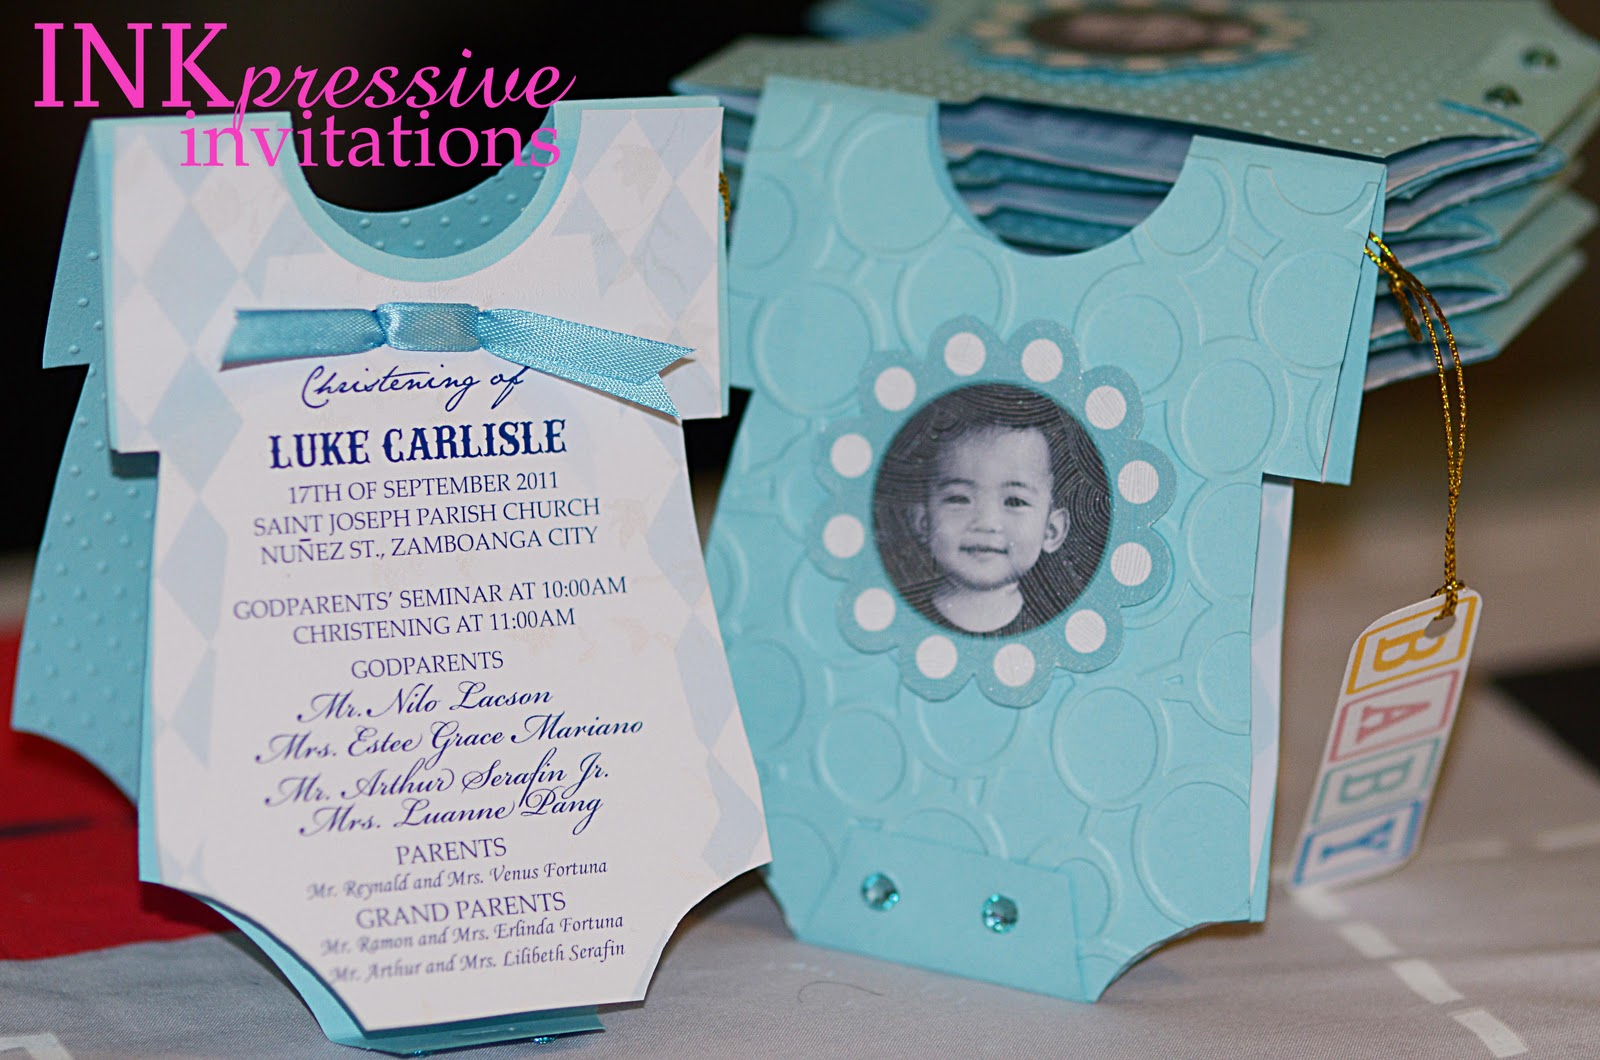 Fine baby boy christening invites collection invitation card ideas lukes christening 09172011 inkpressive invitations solutioingenieria Gallery